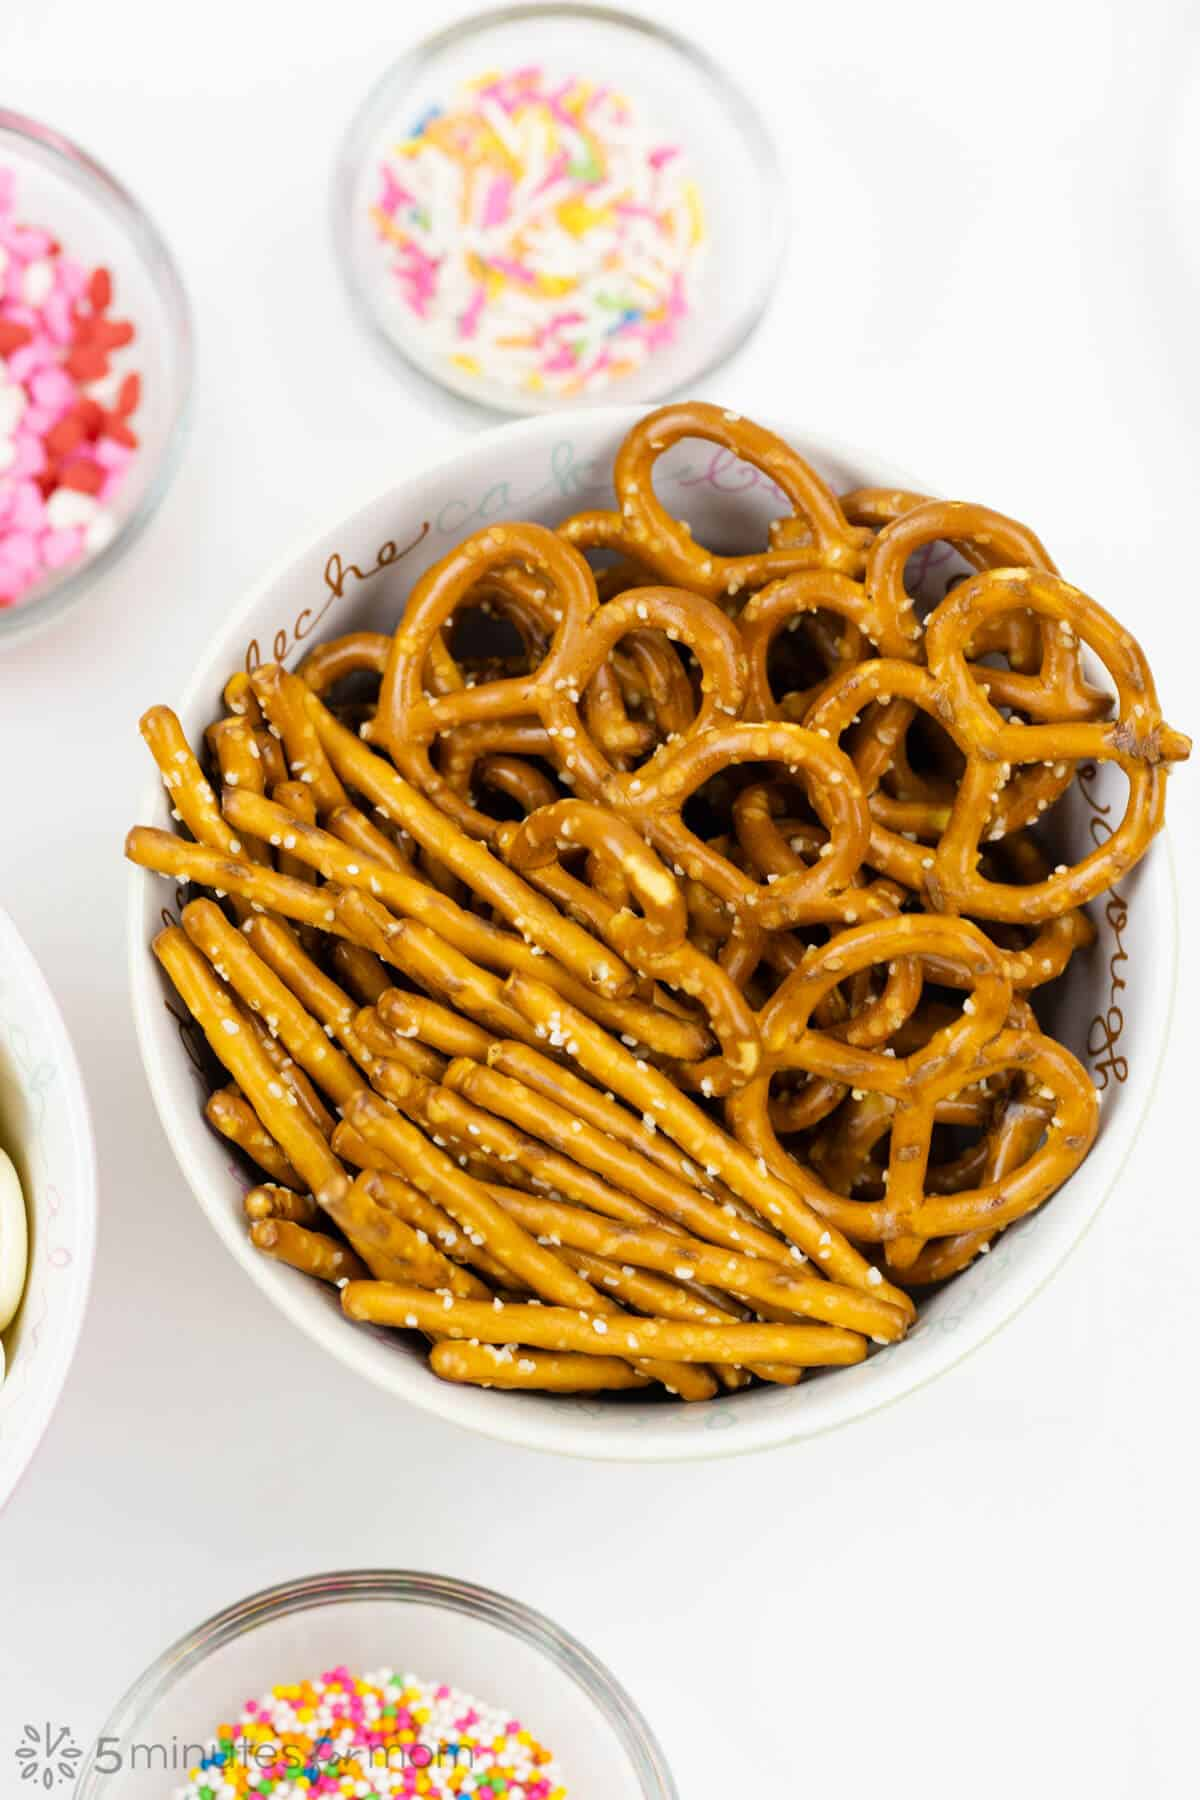 how to make dipped pretzels